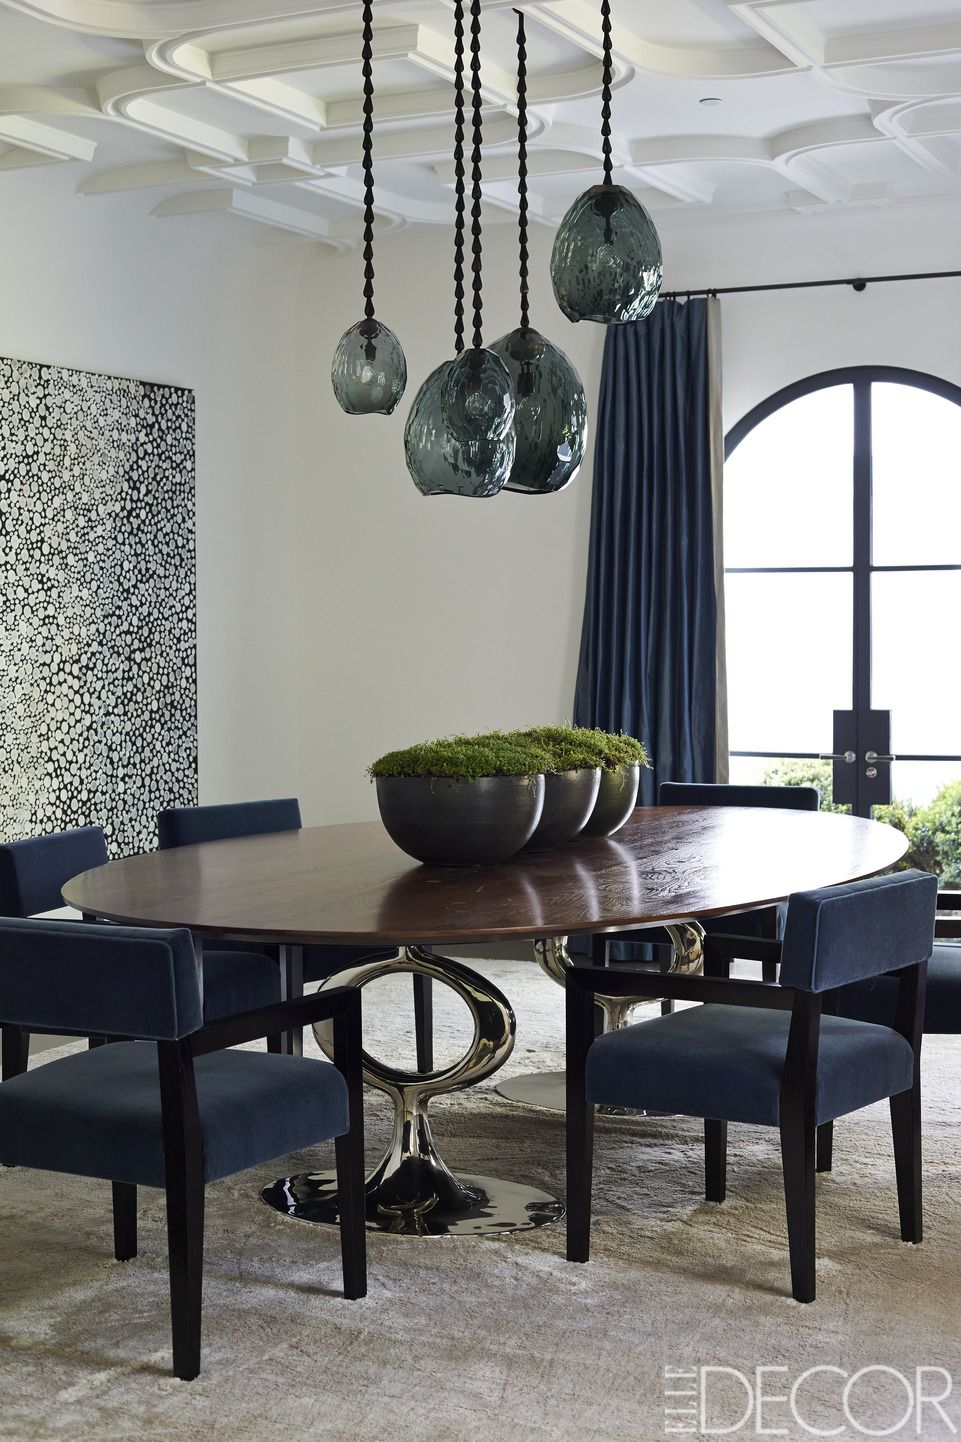 House Tour Inside Lori Loughlin And Mossimo Giannulli's Renovated Enchanting Modern Dining Room Furniture Design Ideas